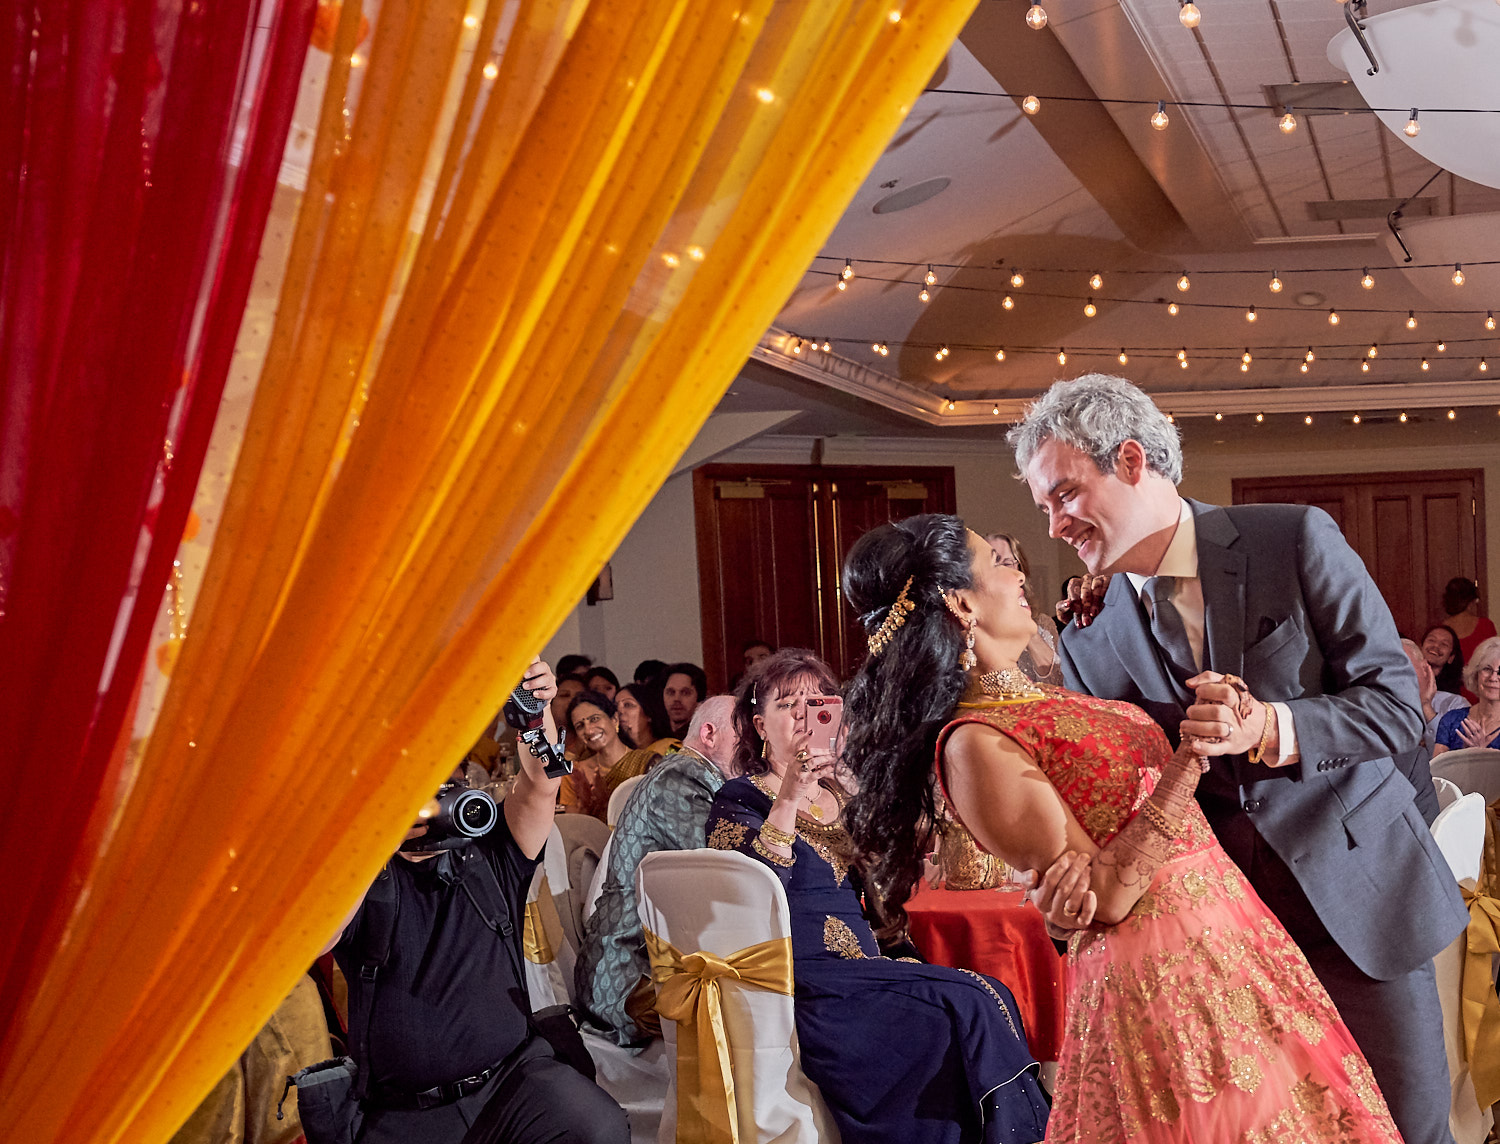 saratoga-country-club-wedding-reception-photography-by-afewgoodclicks-at 42.jpg